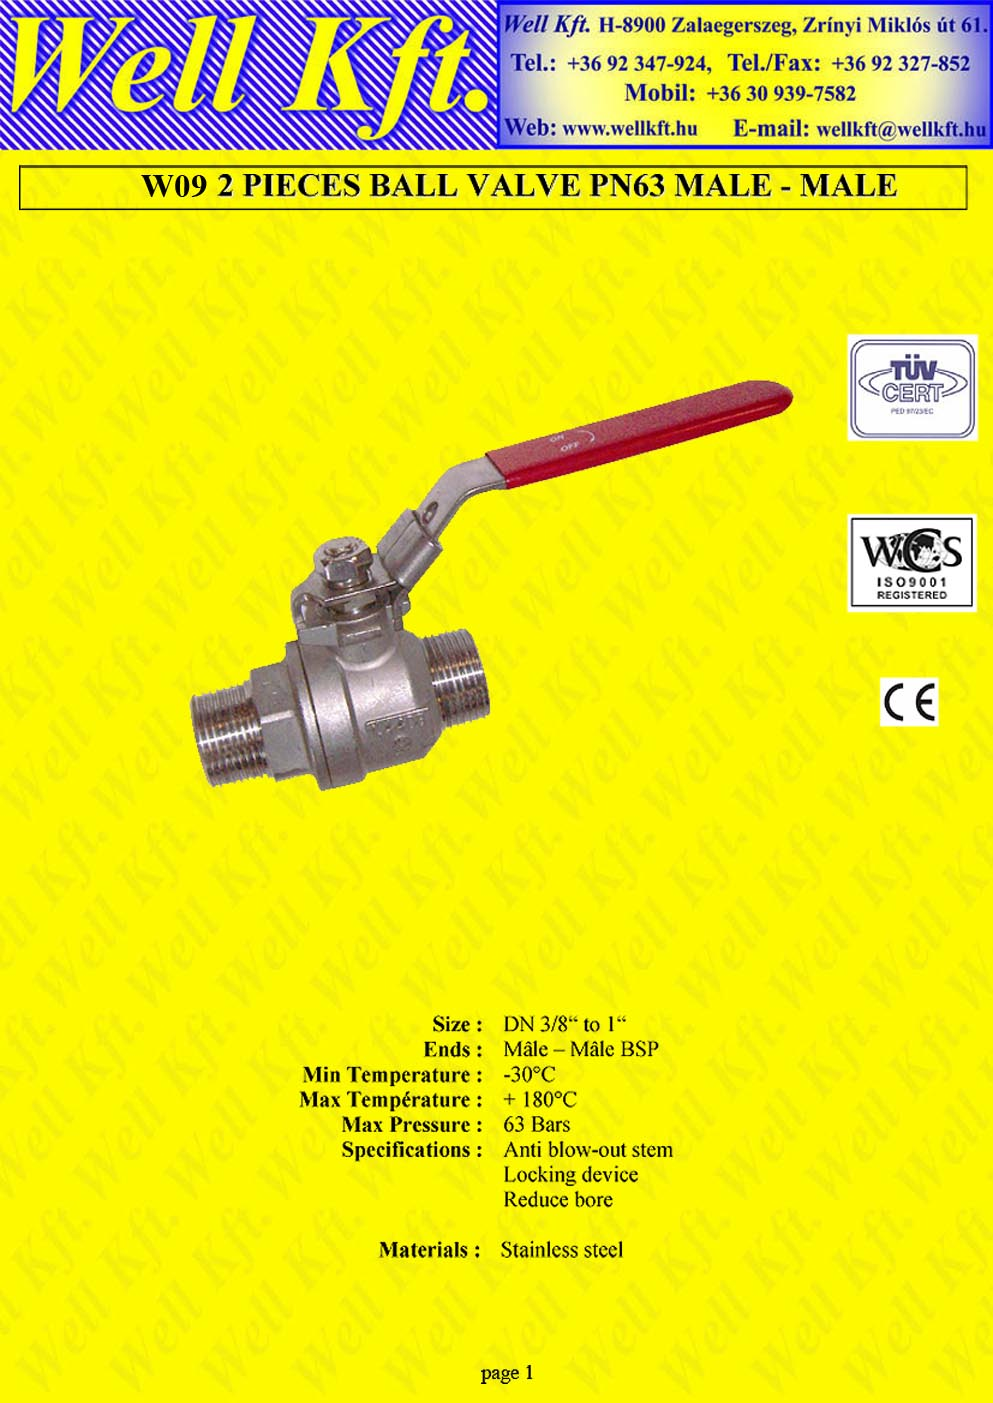 2 pieces ball valve stainless steel, male-male PN 50-63 (1.)